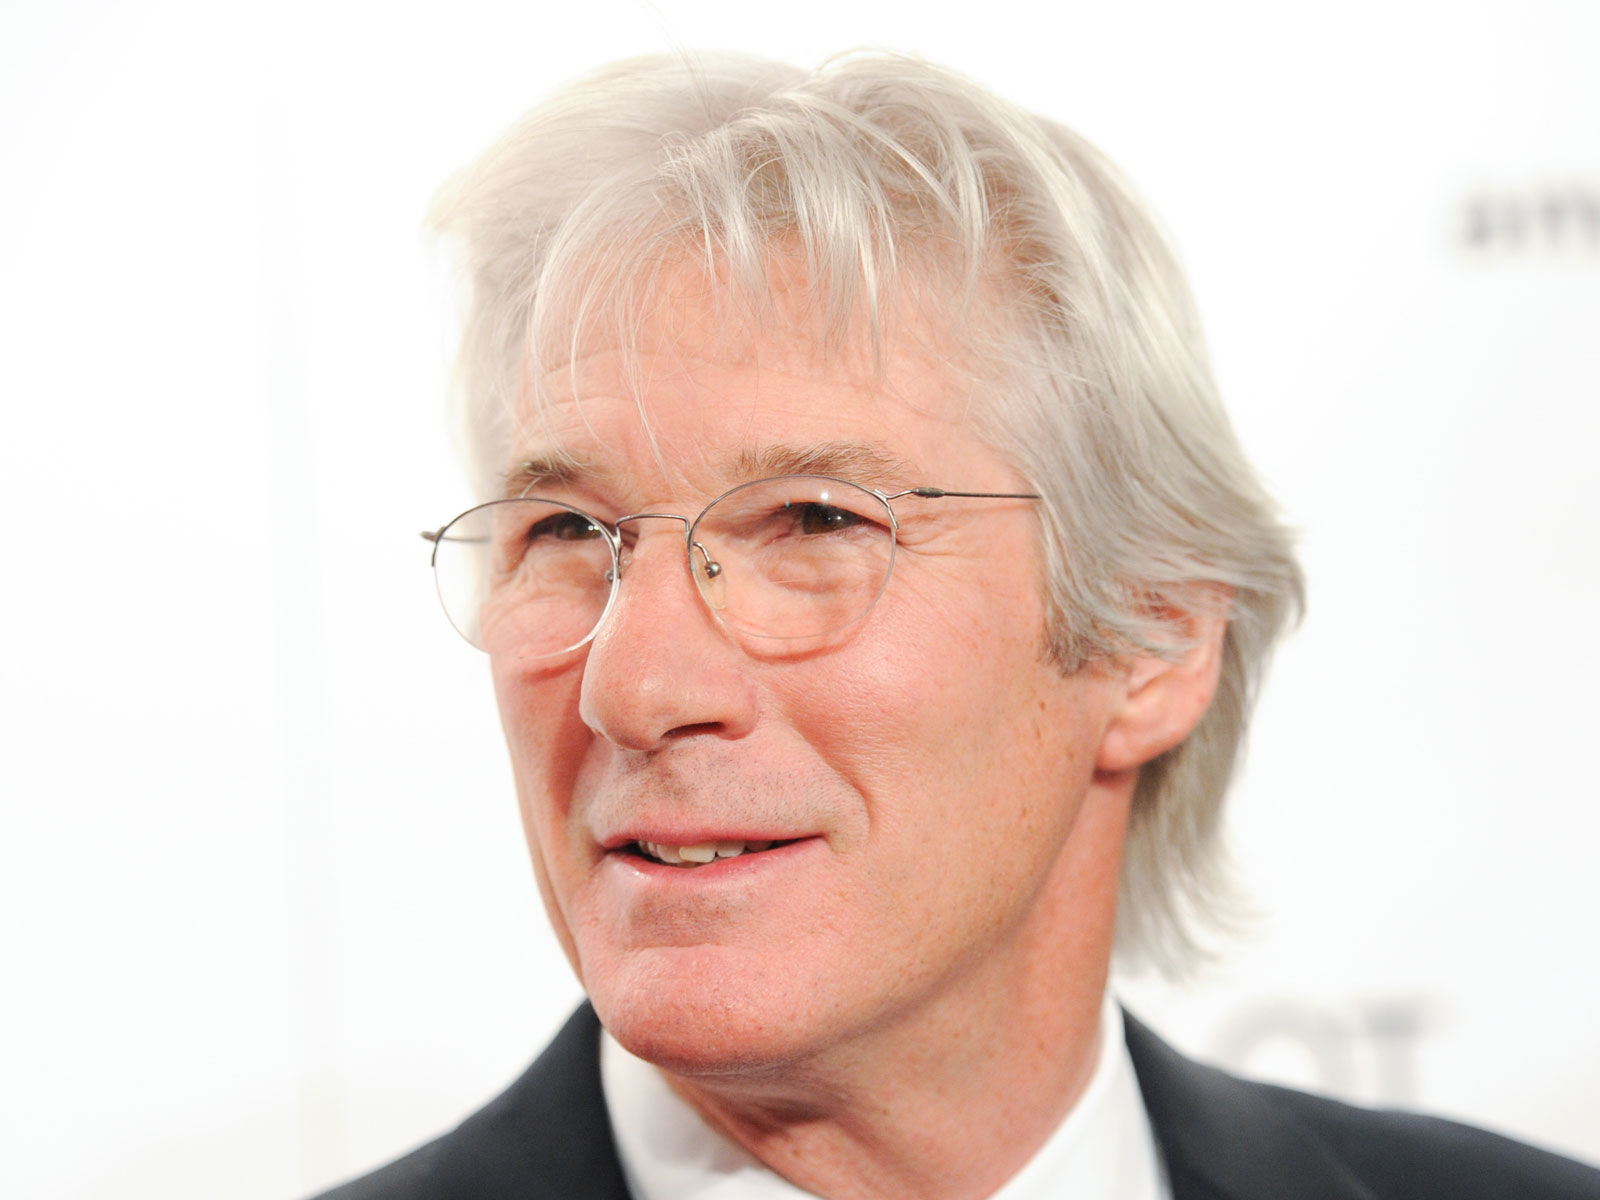 richard gere computer wallpaper 59504